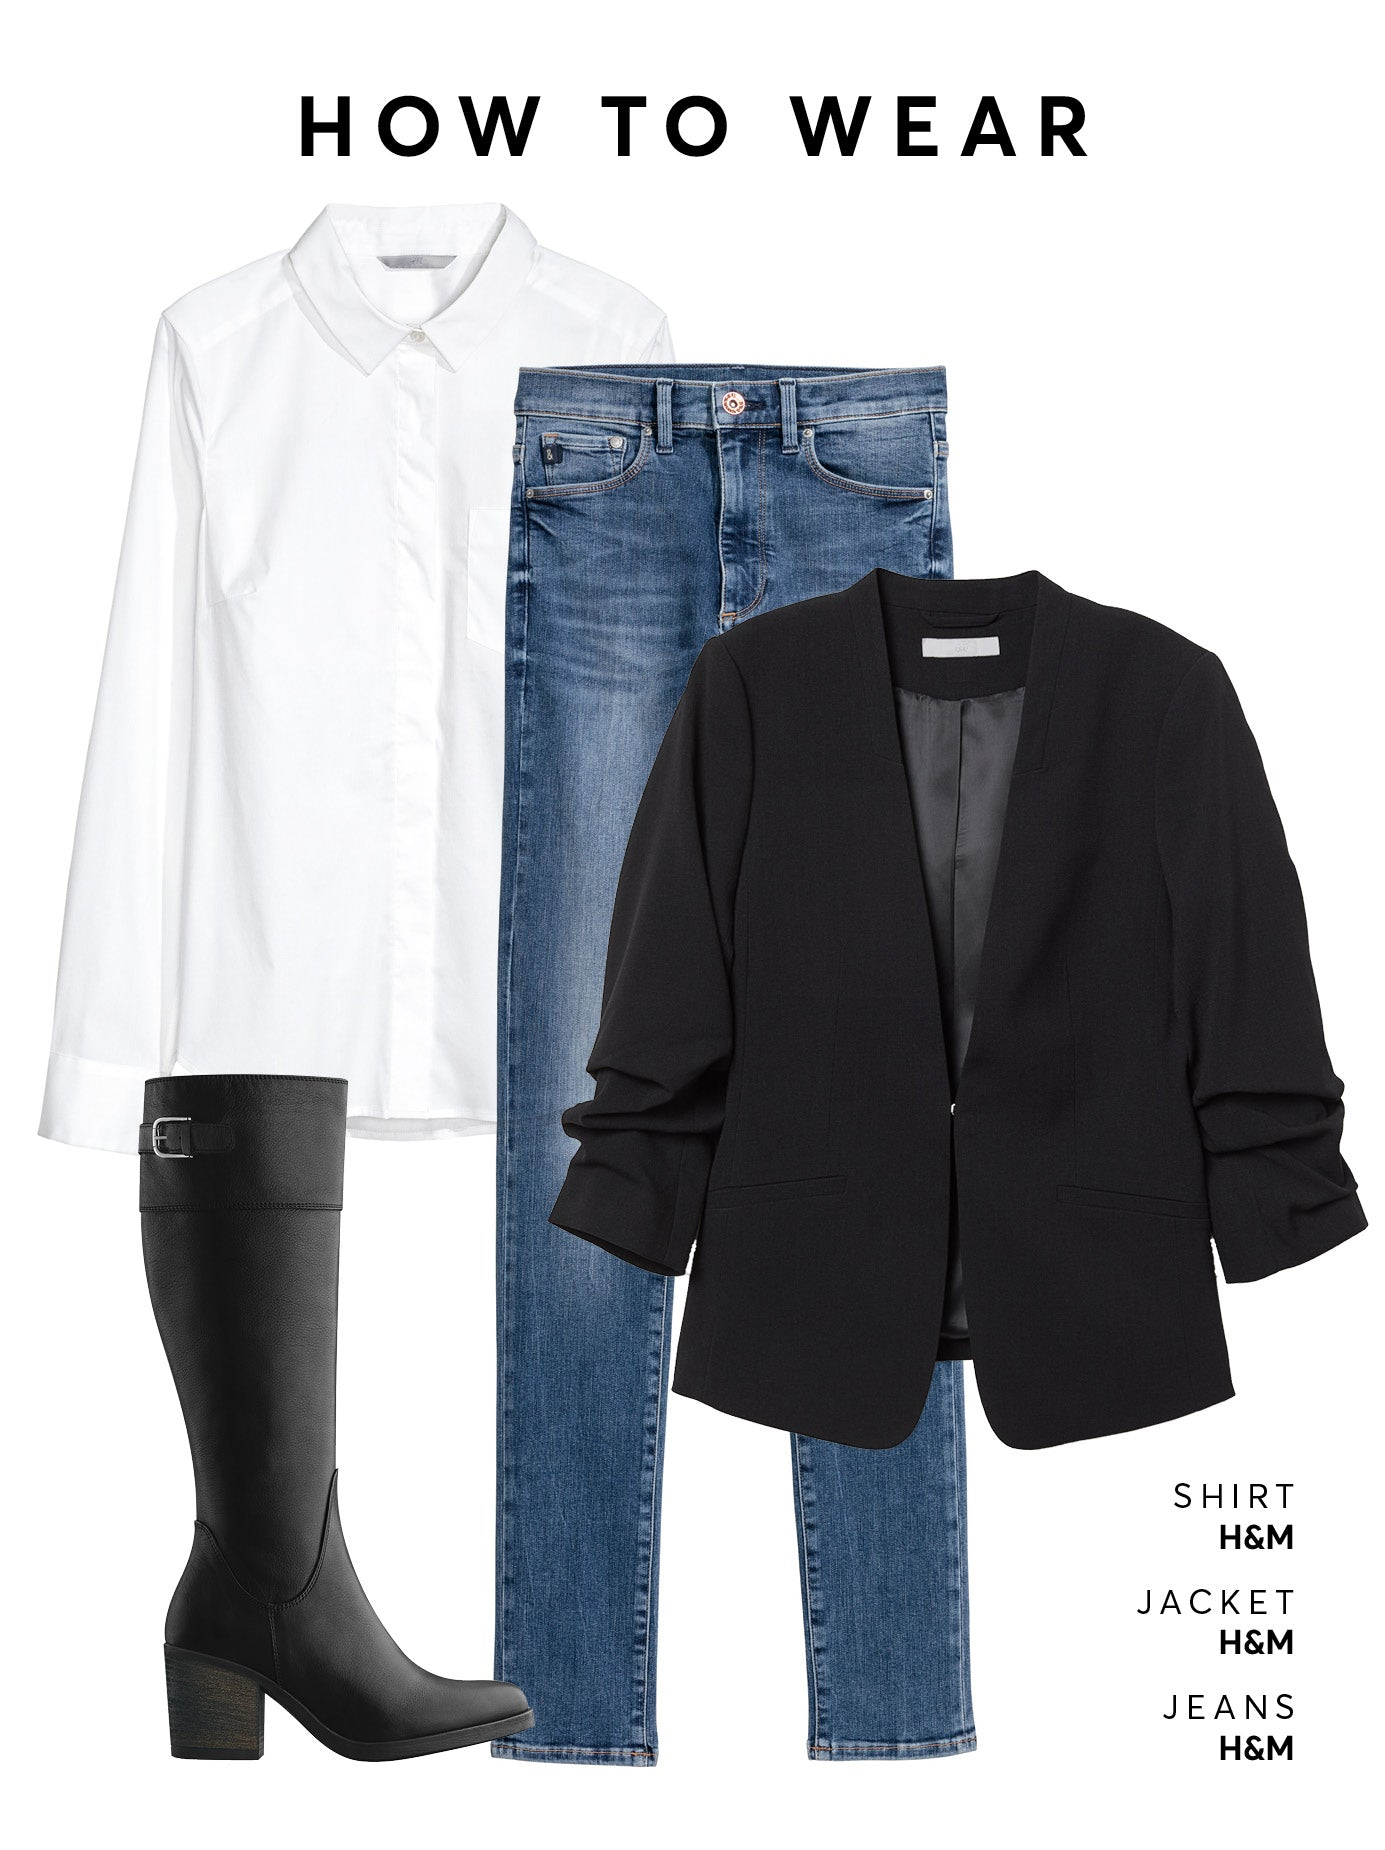 Wear with denim jeans, a white shirt and blazer.